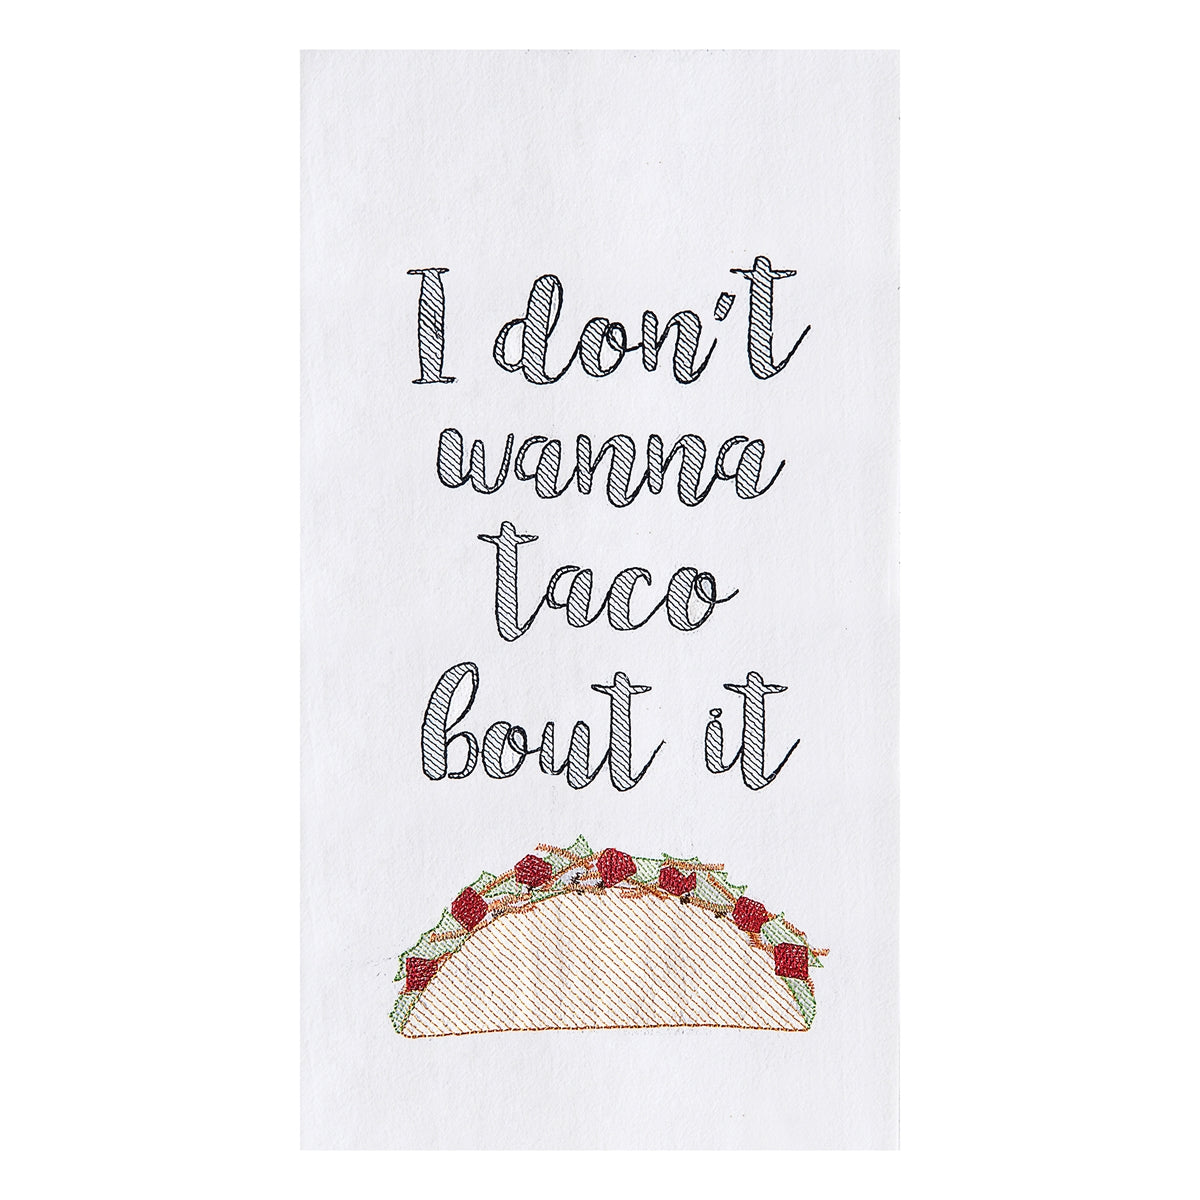 Taco Bout It Teatowel